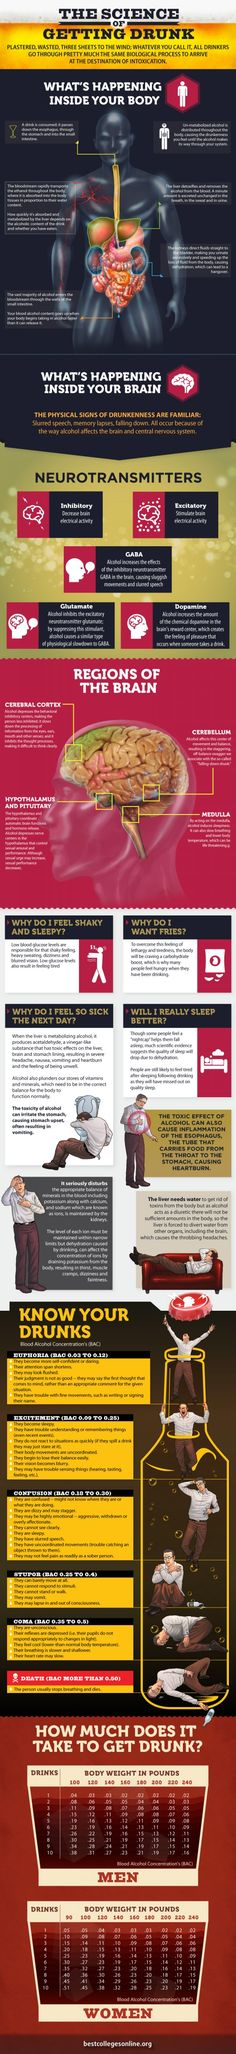 The science of getting drunk #infographic